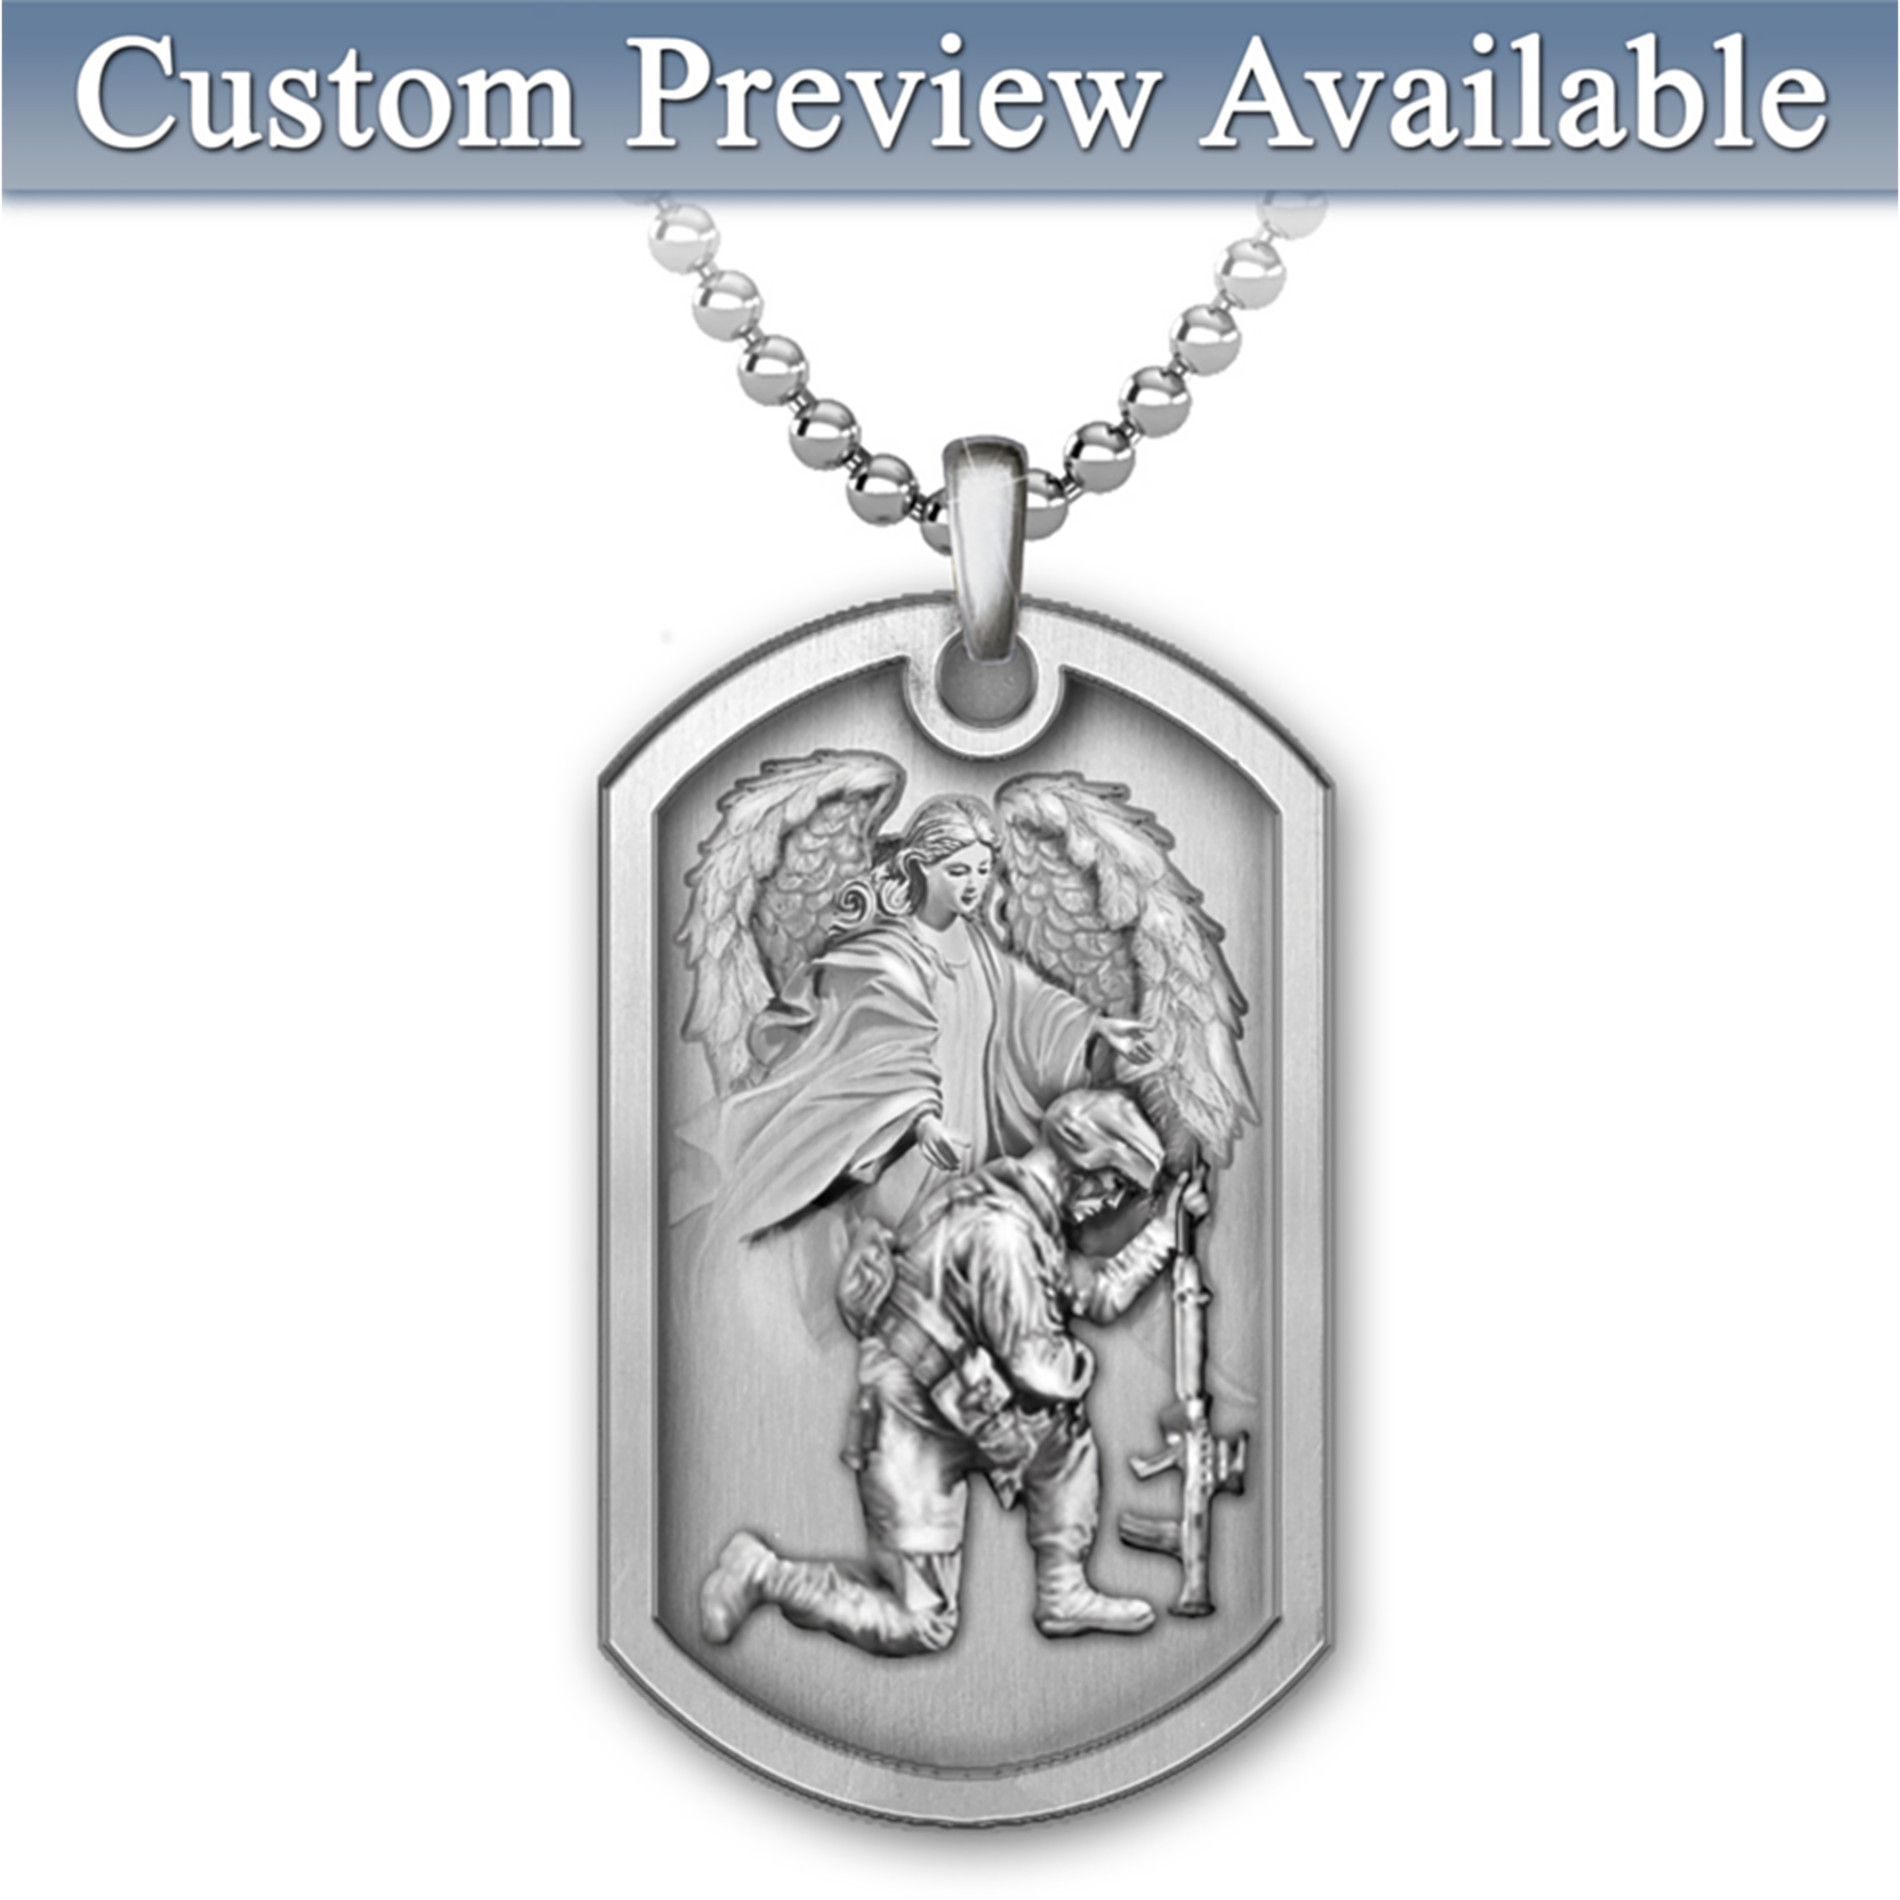 The Bradford Exchange Personalized Men's Dog Tag Pendant Necklace: Bless This Soldier at Sears.com